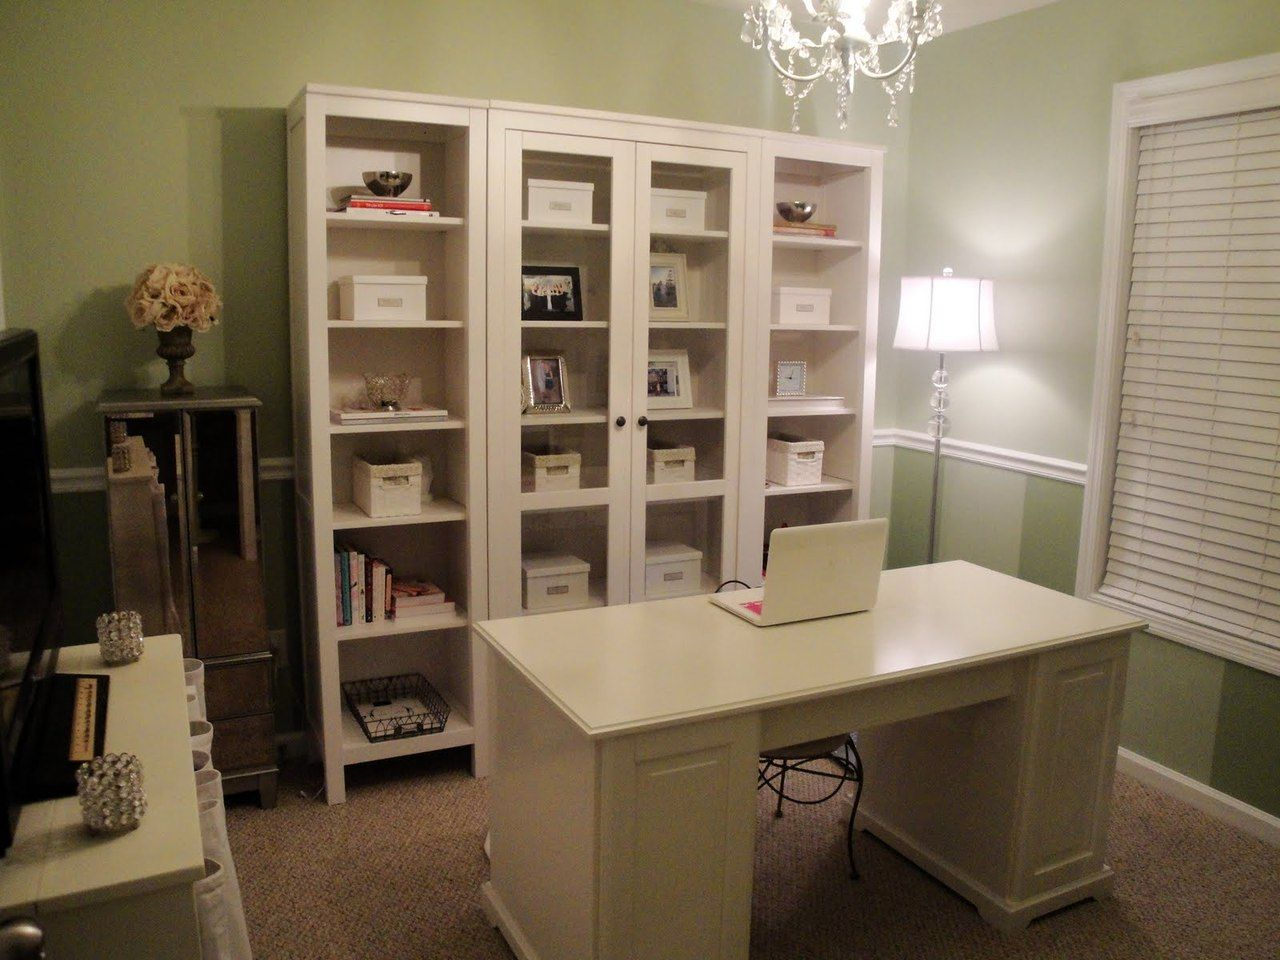 Chic Home Decor   Shabby Chic Home Office Decor For Tight Budget   Office  Architect